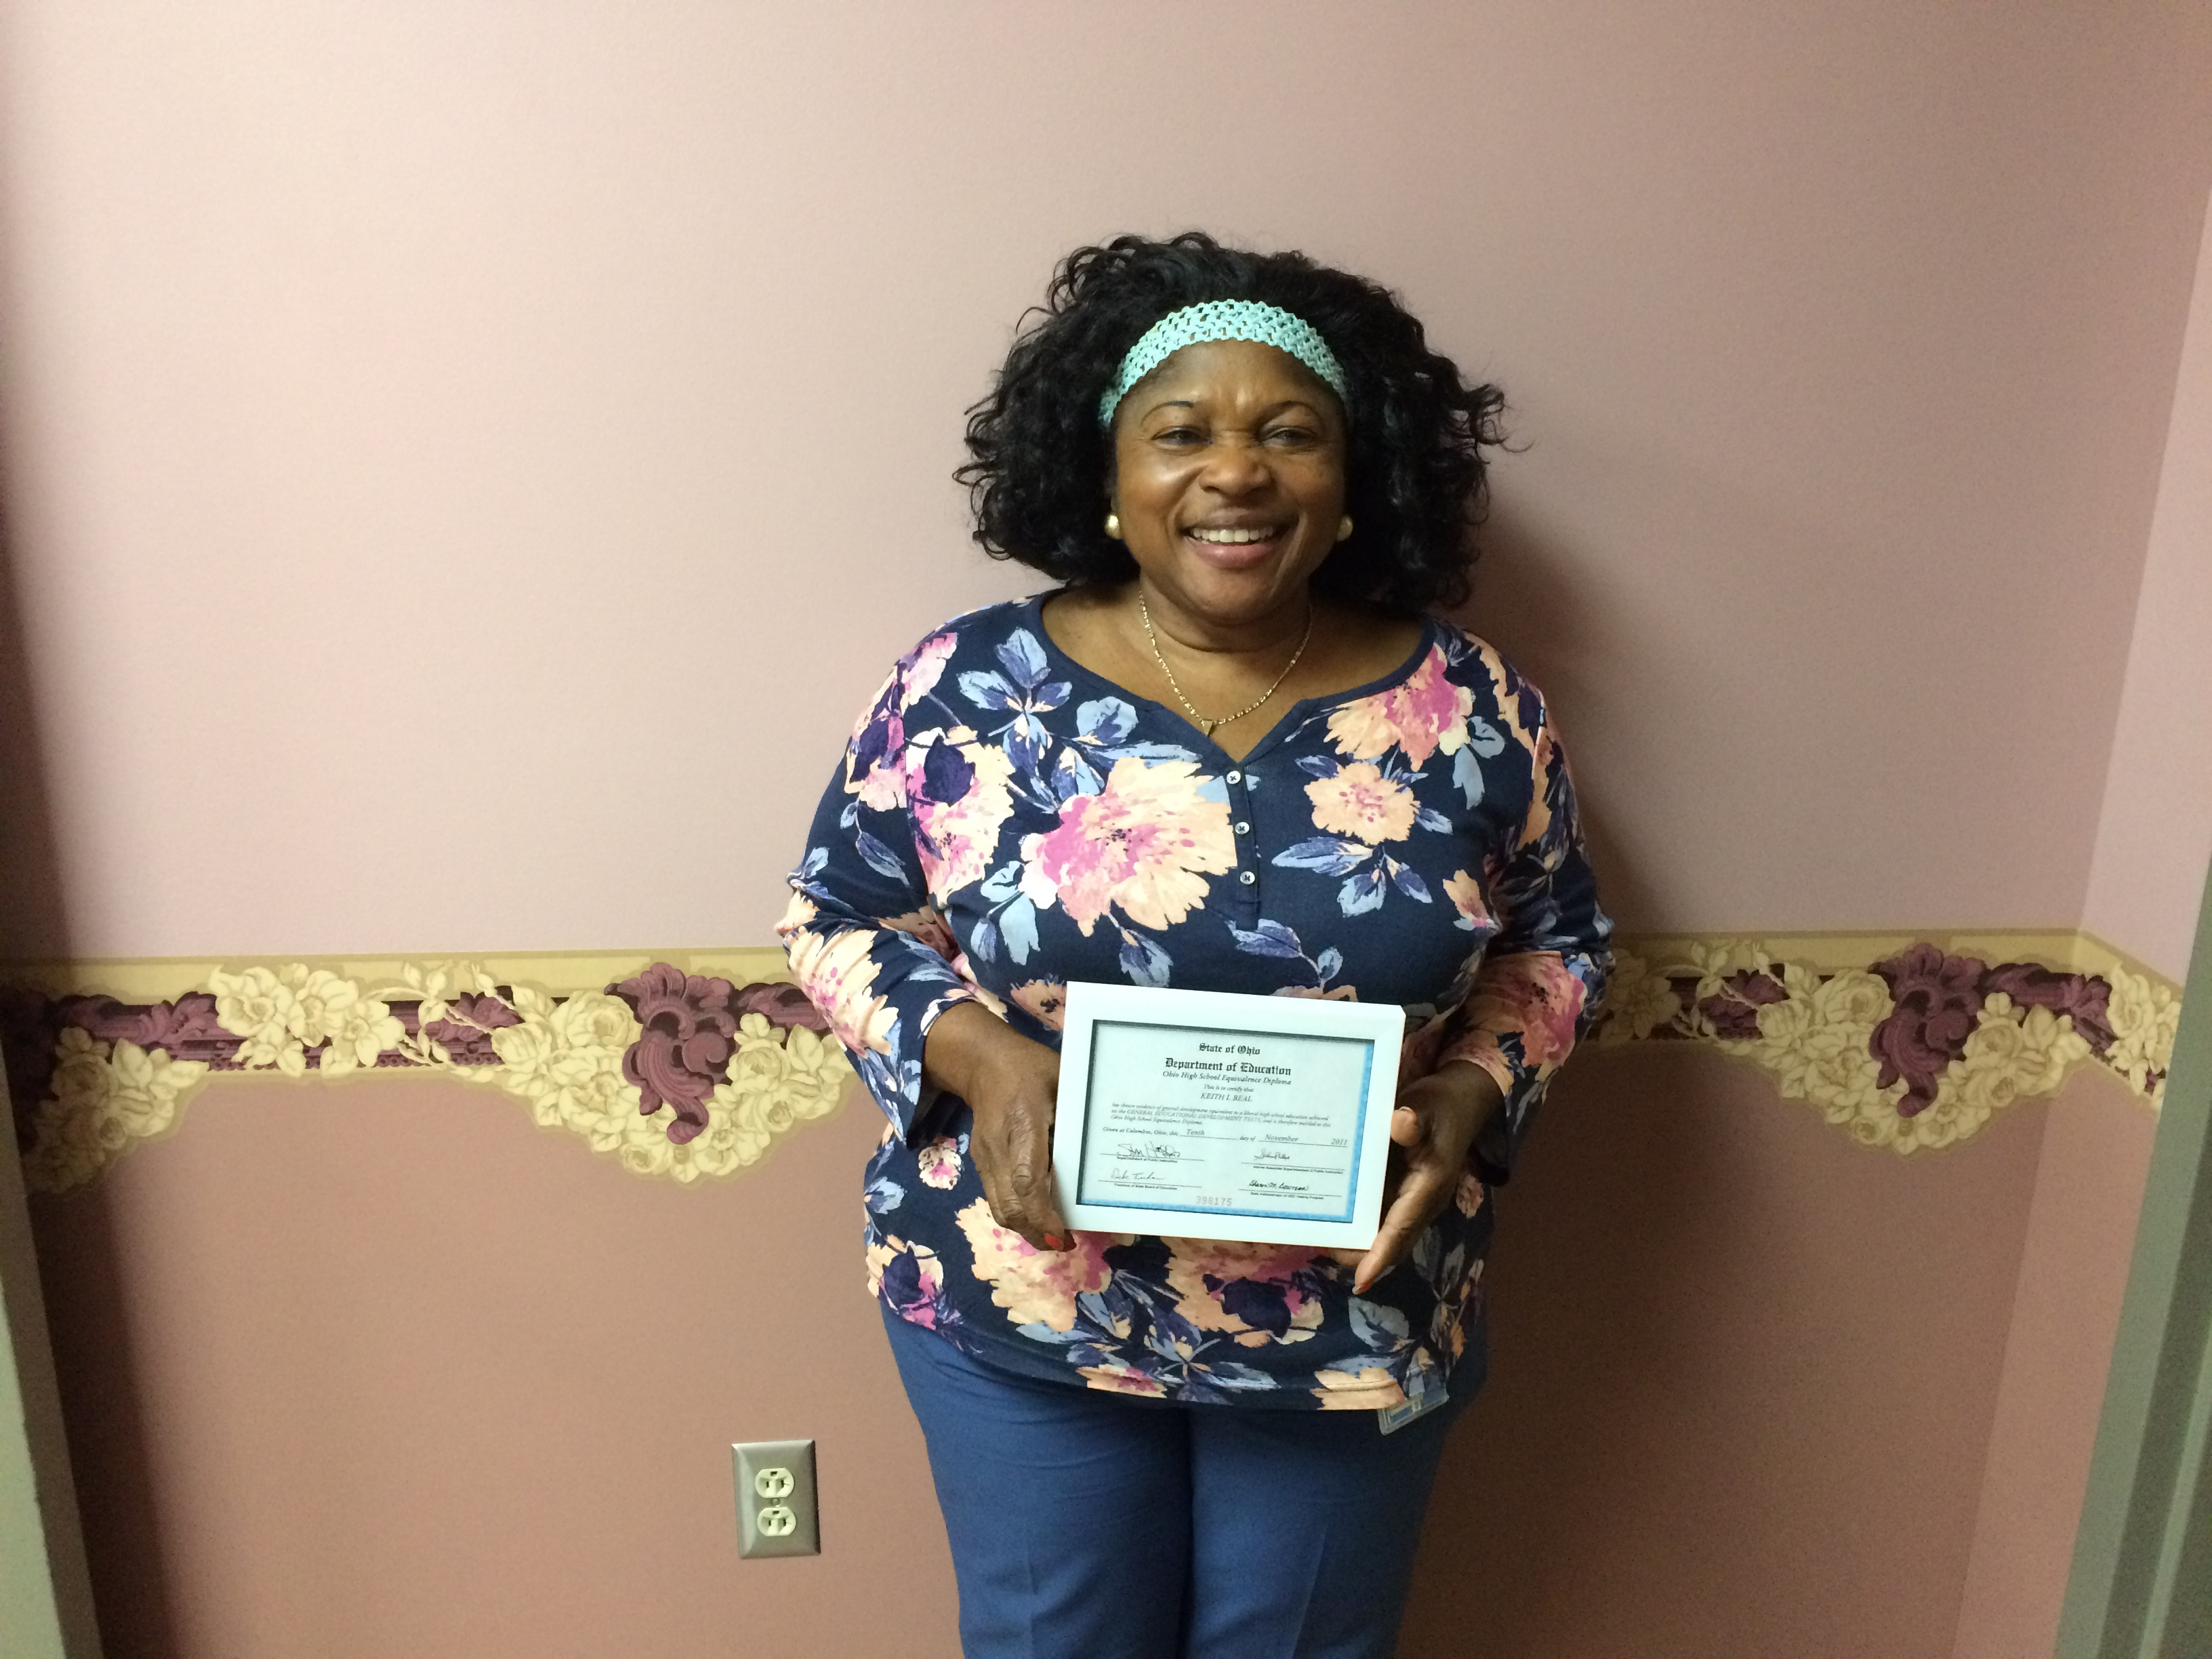 LoCI's Assistant Principal Recognized at CEA Conference